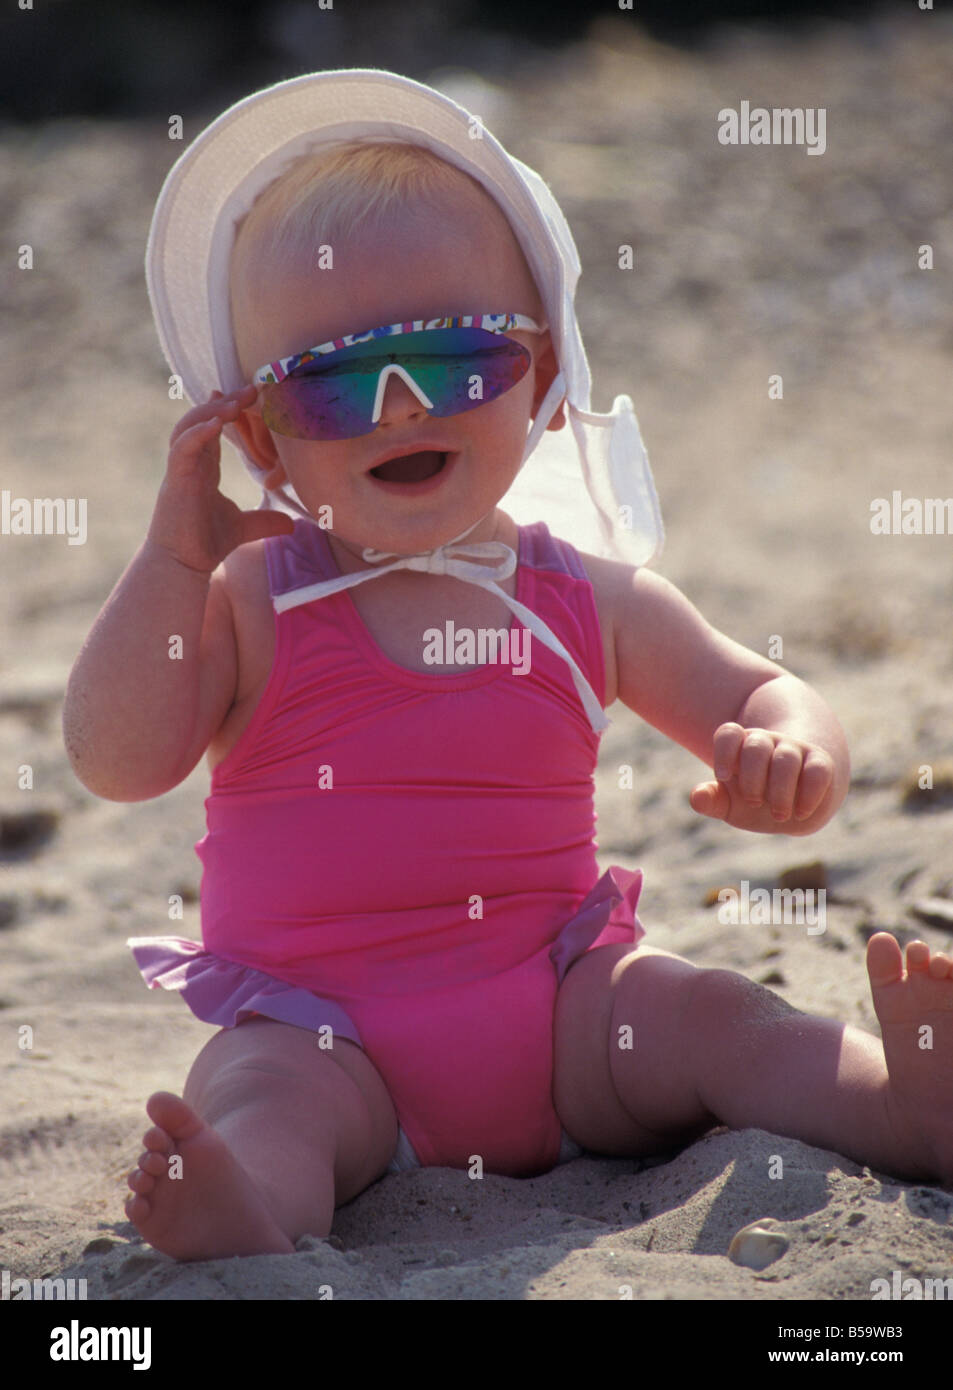 d7a98a5342f5 little baby girl sitting on beach in swimsuit wearing sunhat and sunglasses